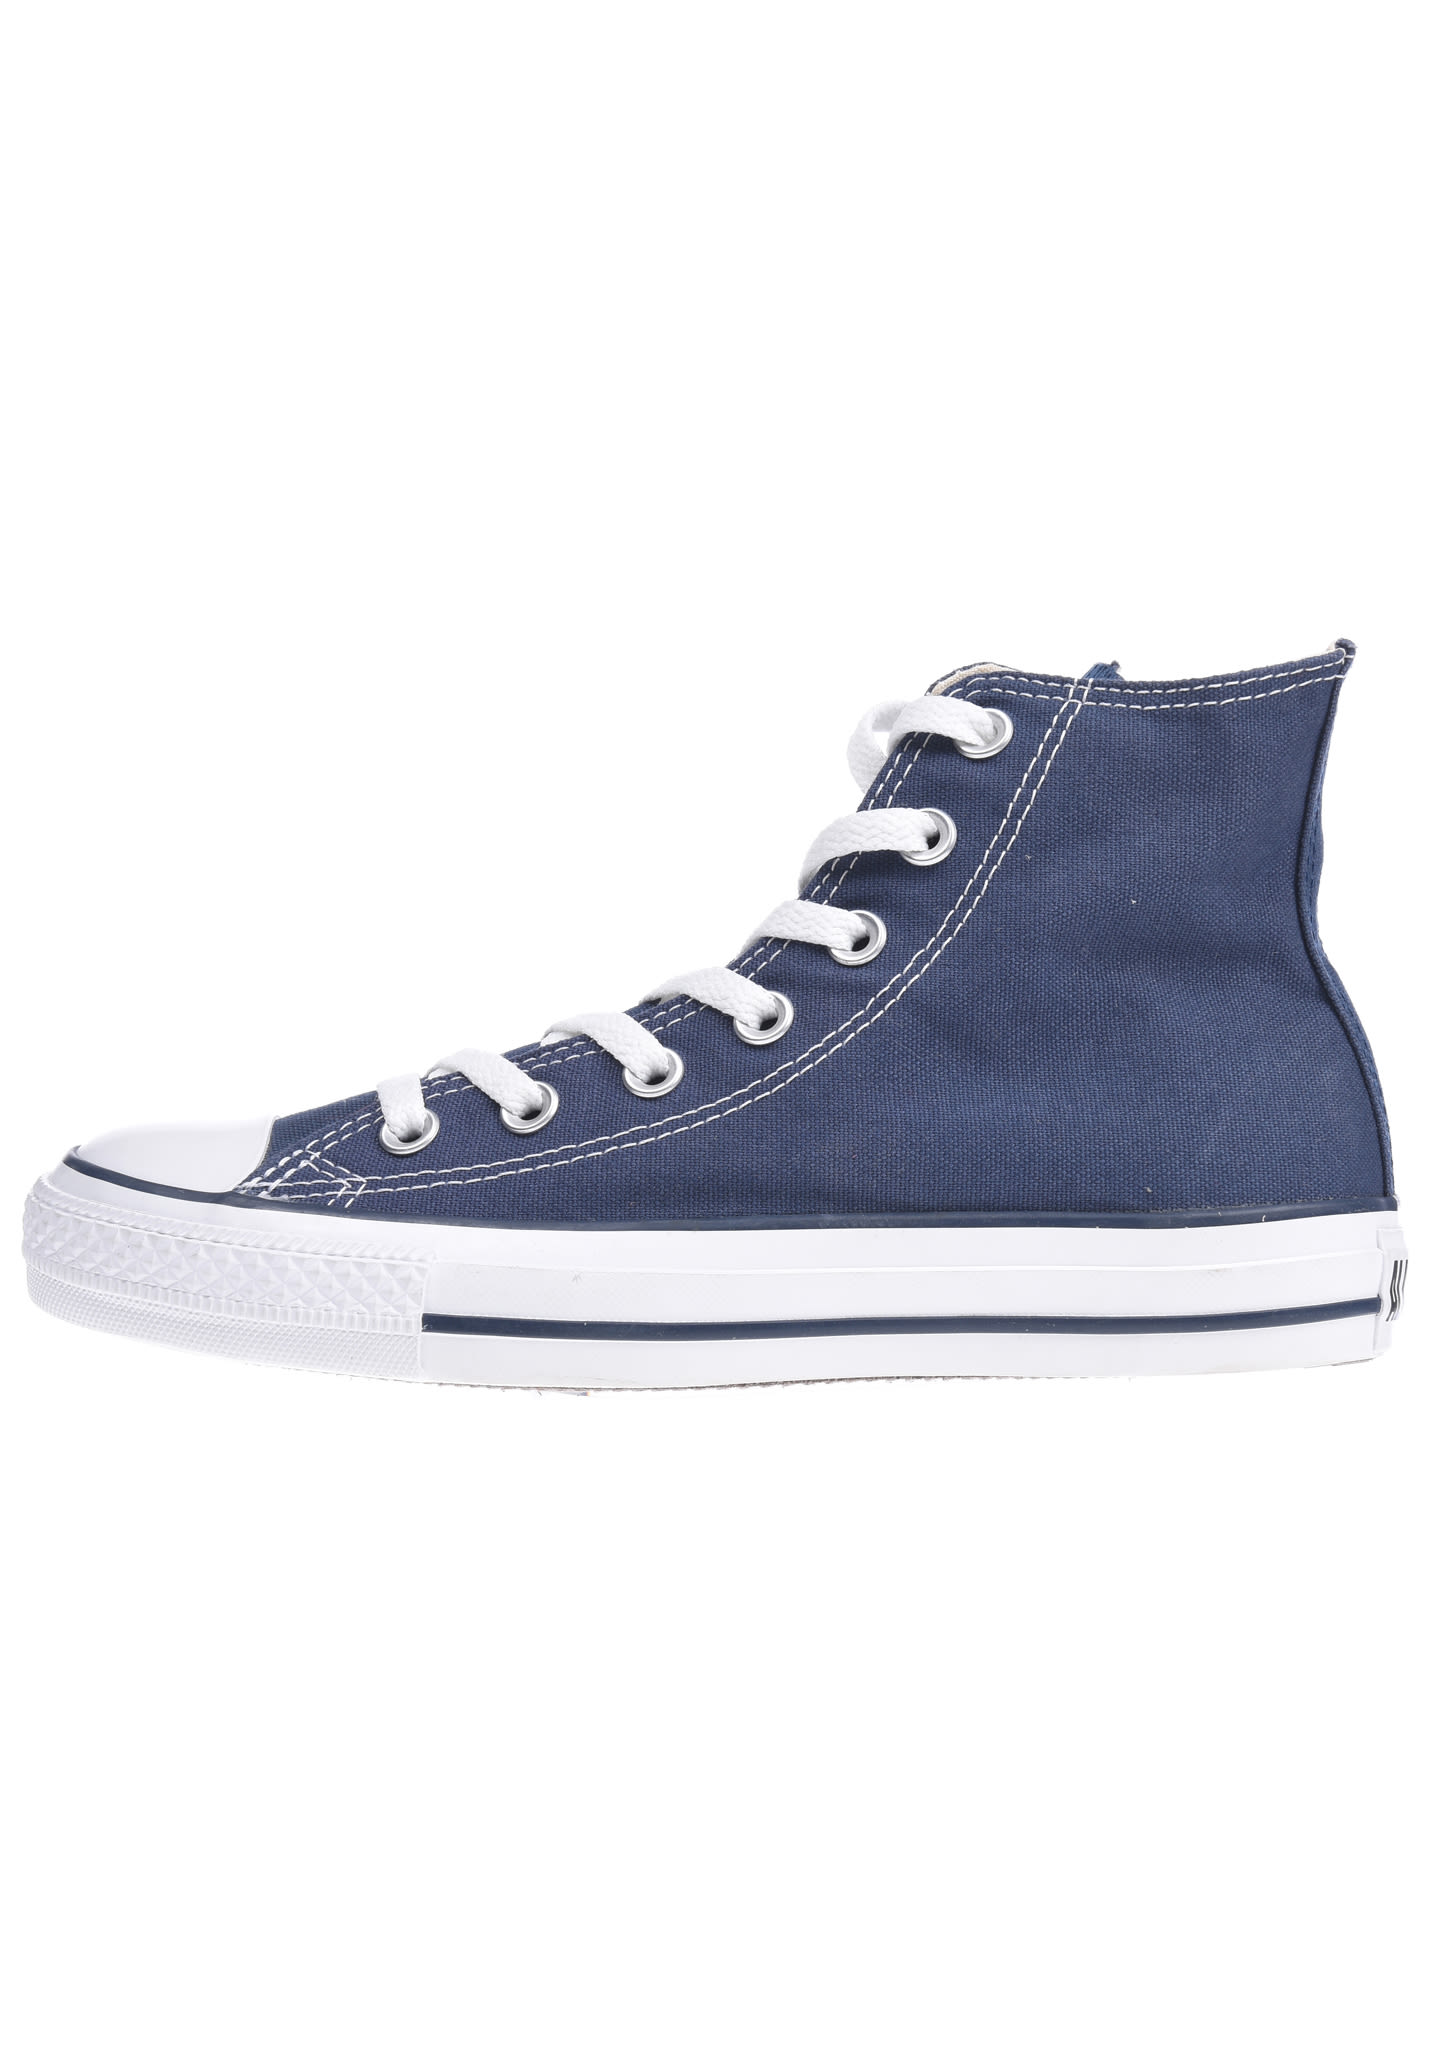 converse chucks leder blau getraenke. Black Bedroom Furniture Sets. Home Design Ideas